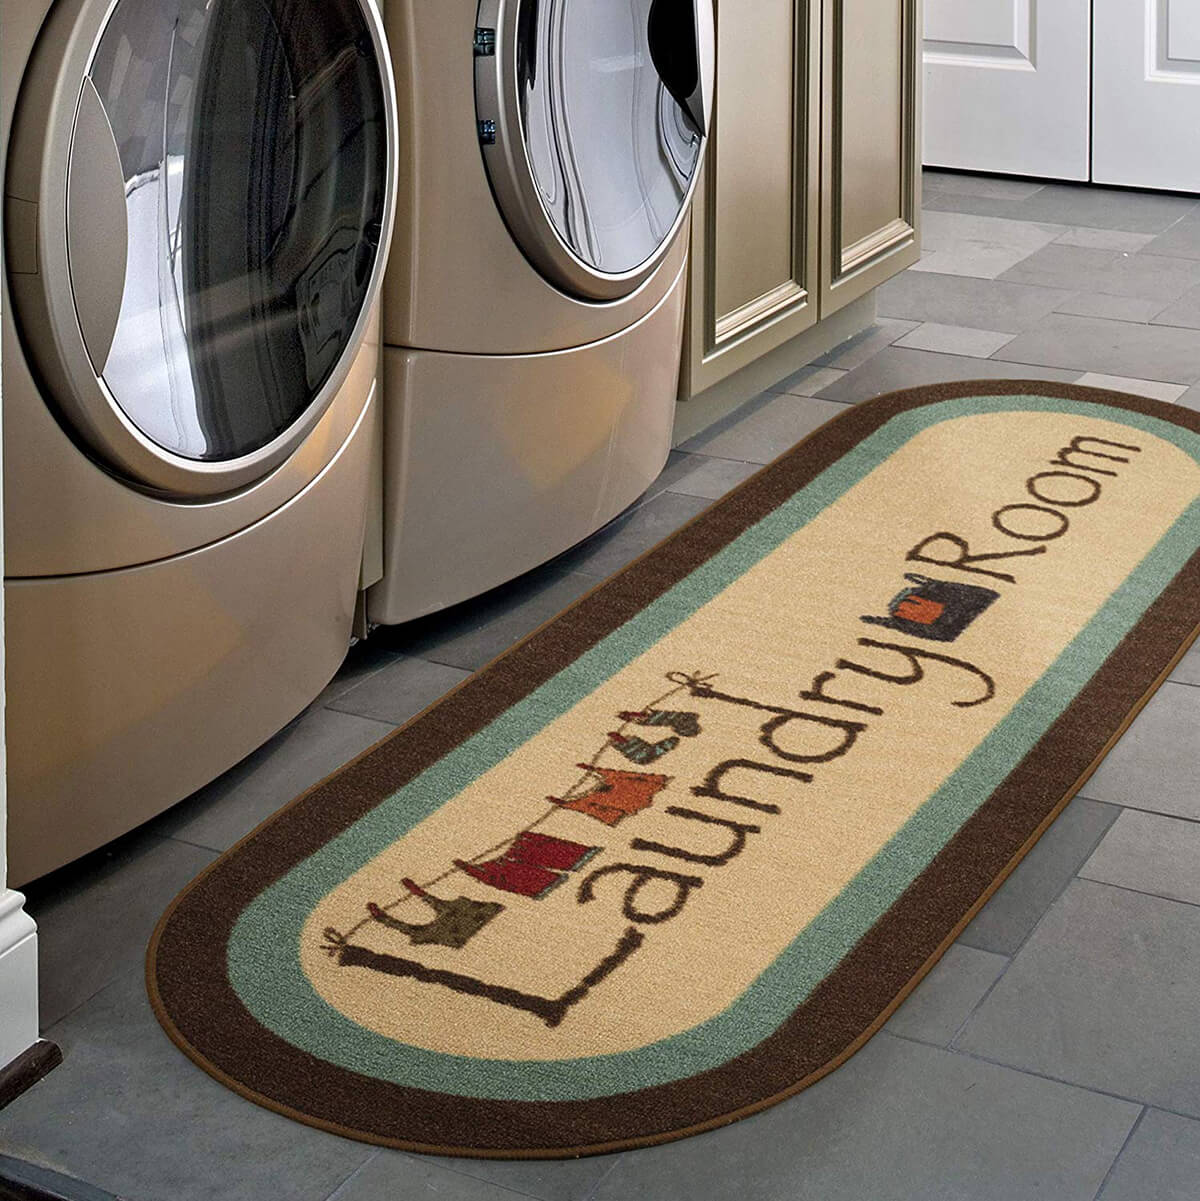 Playful Illustrated Laundry Room Runner with Clothesline